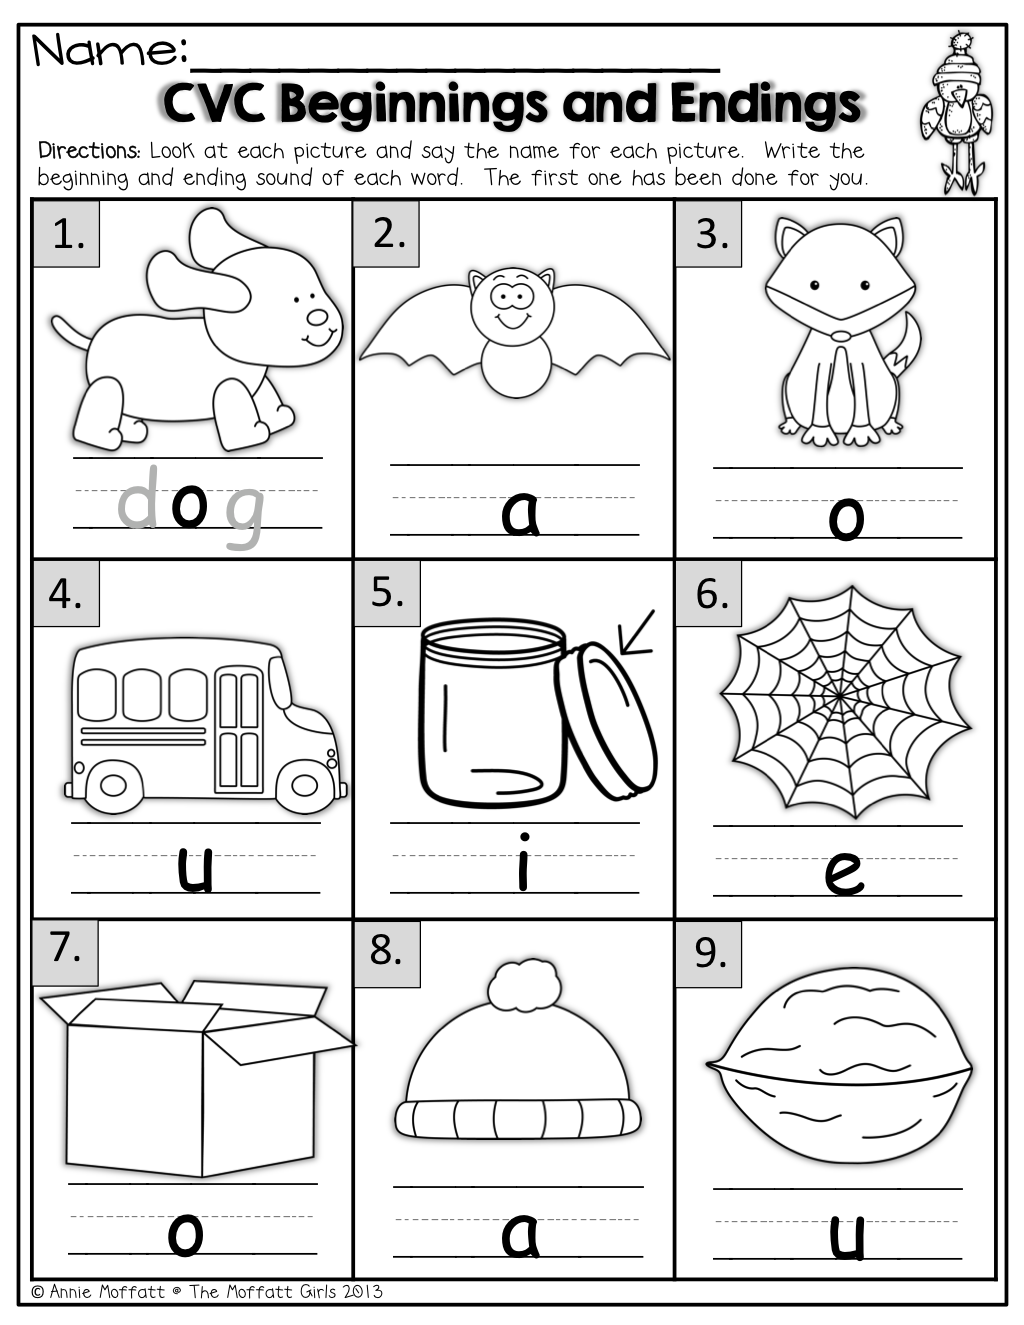 worksheet Kindergarten Cvc Words Worksheets beginning and ending sounds pre k letter activities pinterest kindergarten language arts this is the opposite of other worksheet has them put first last sight